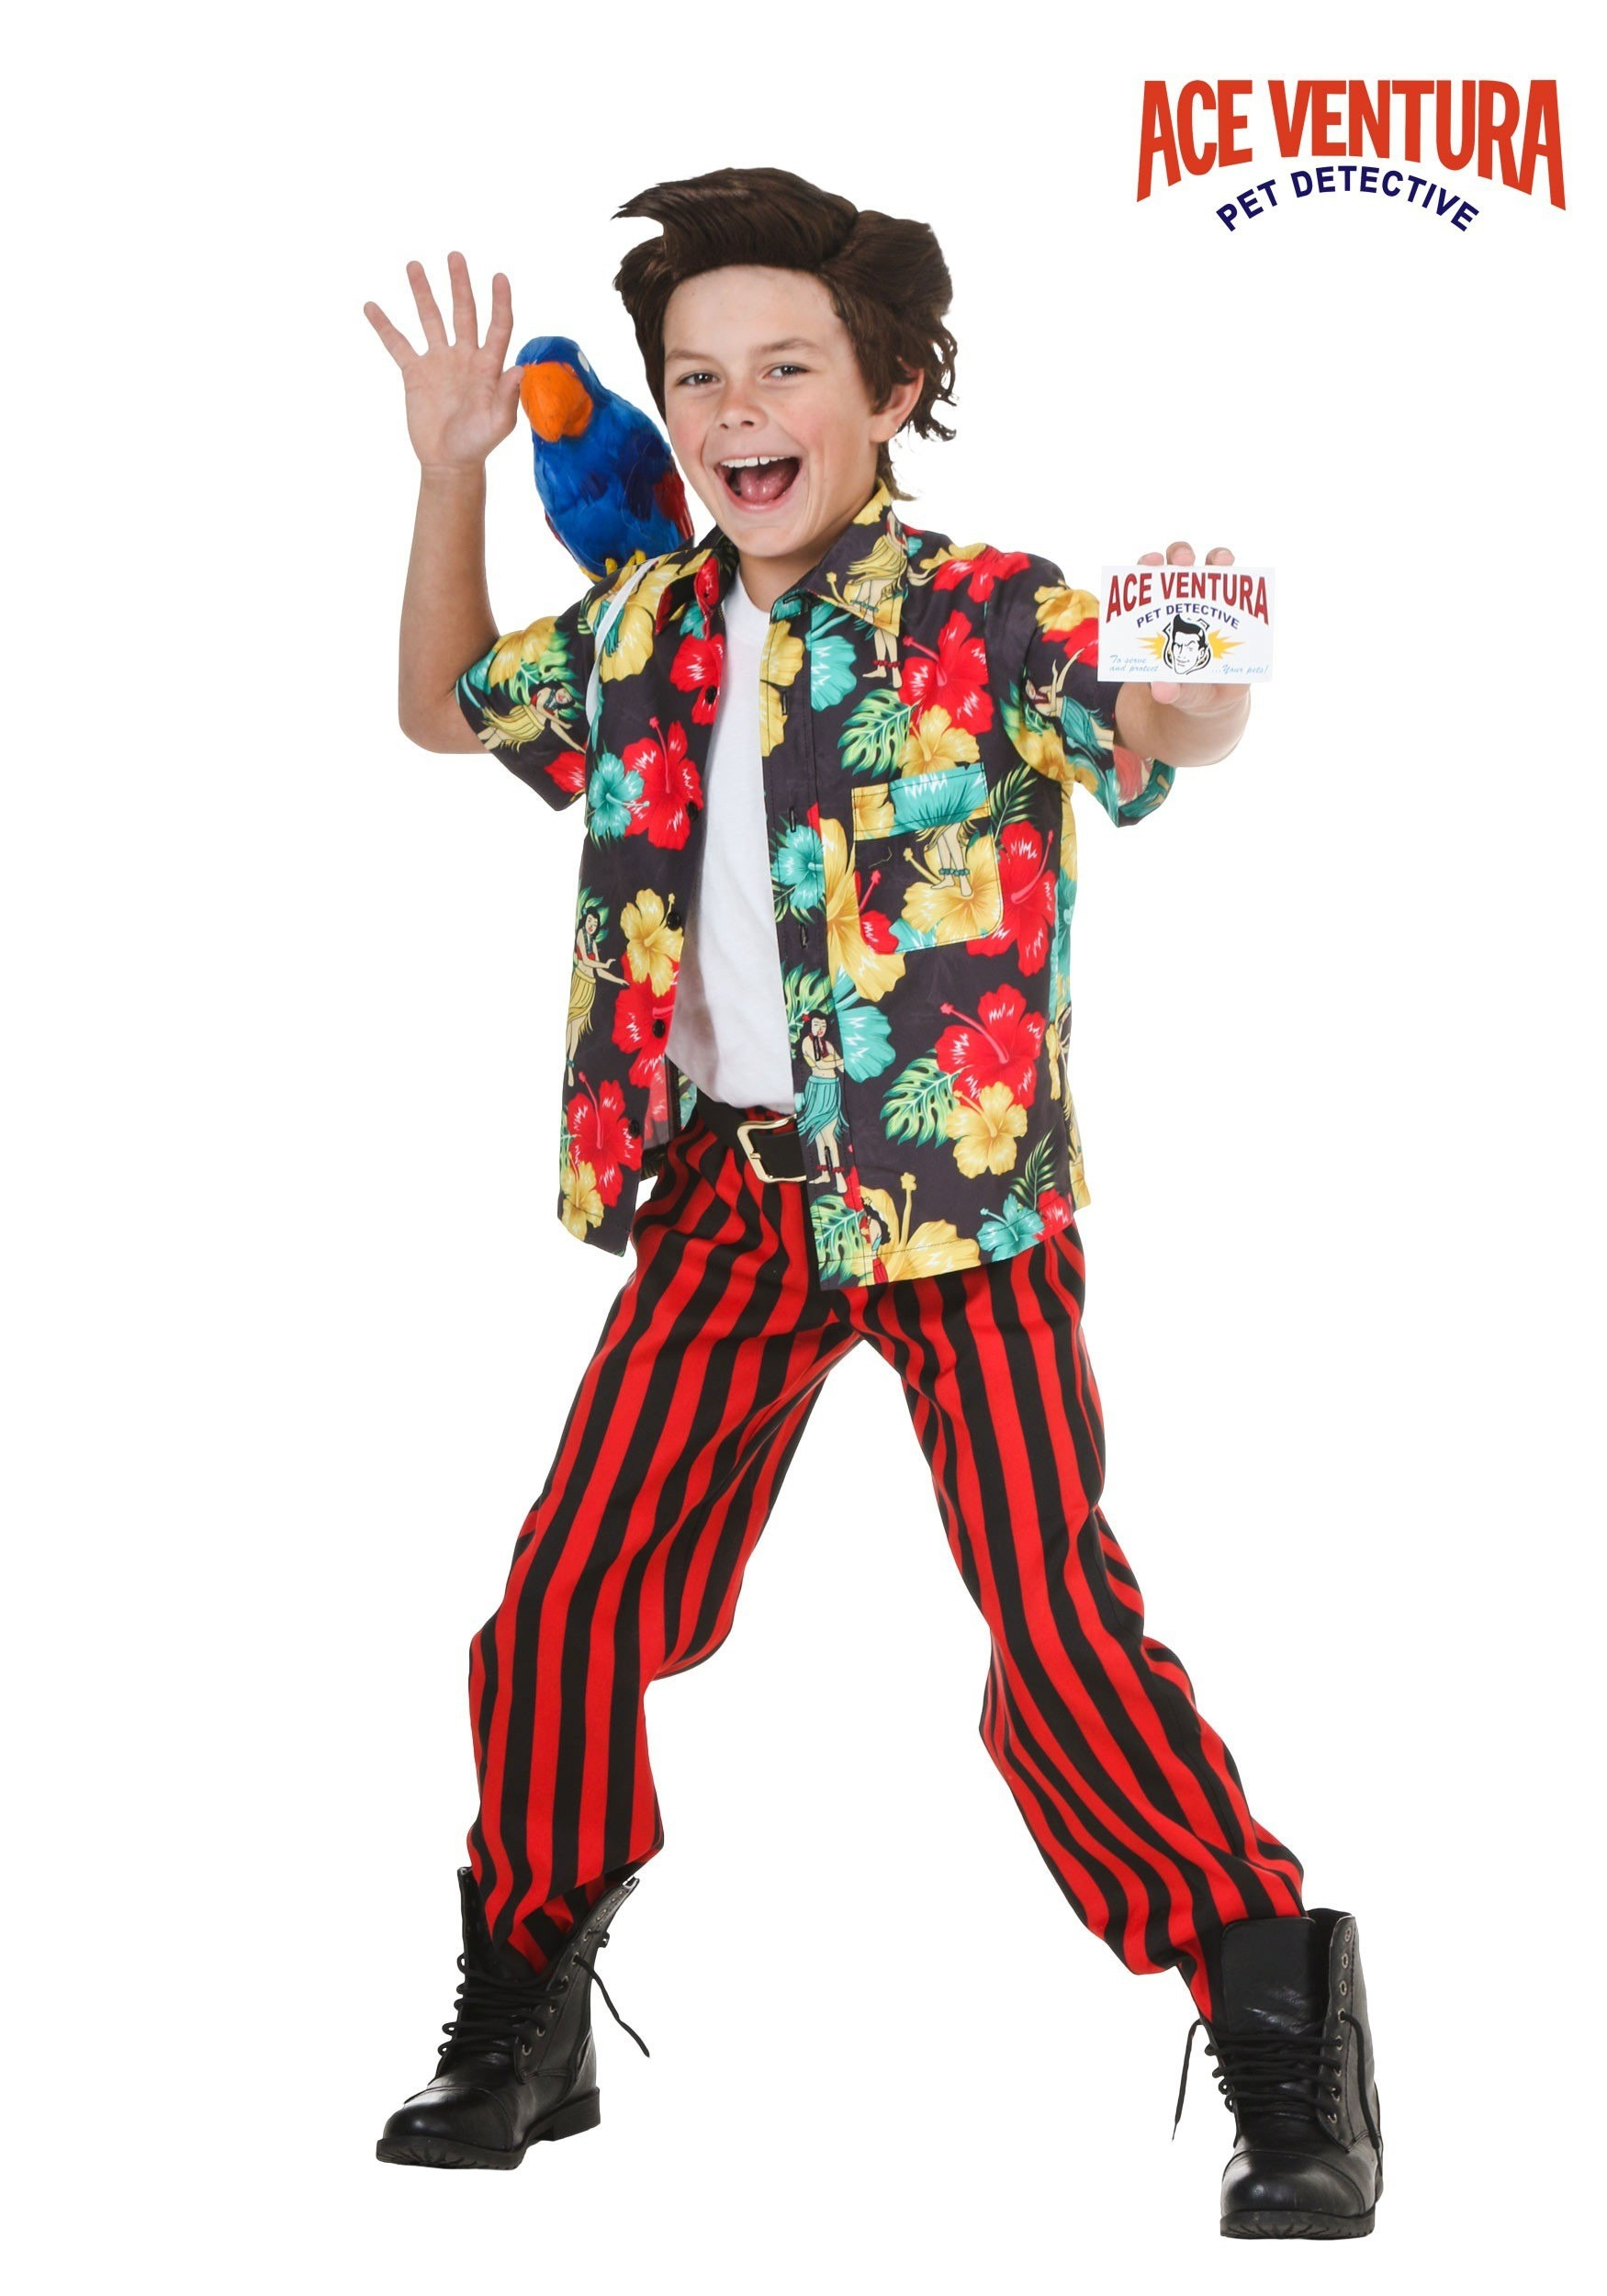 child ace ventura costume with wig - Ace Ventura Halloween Costumes